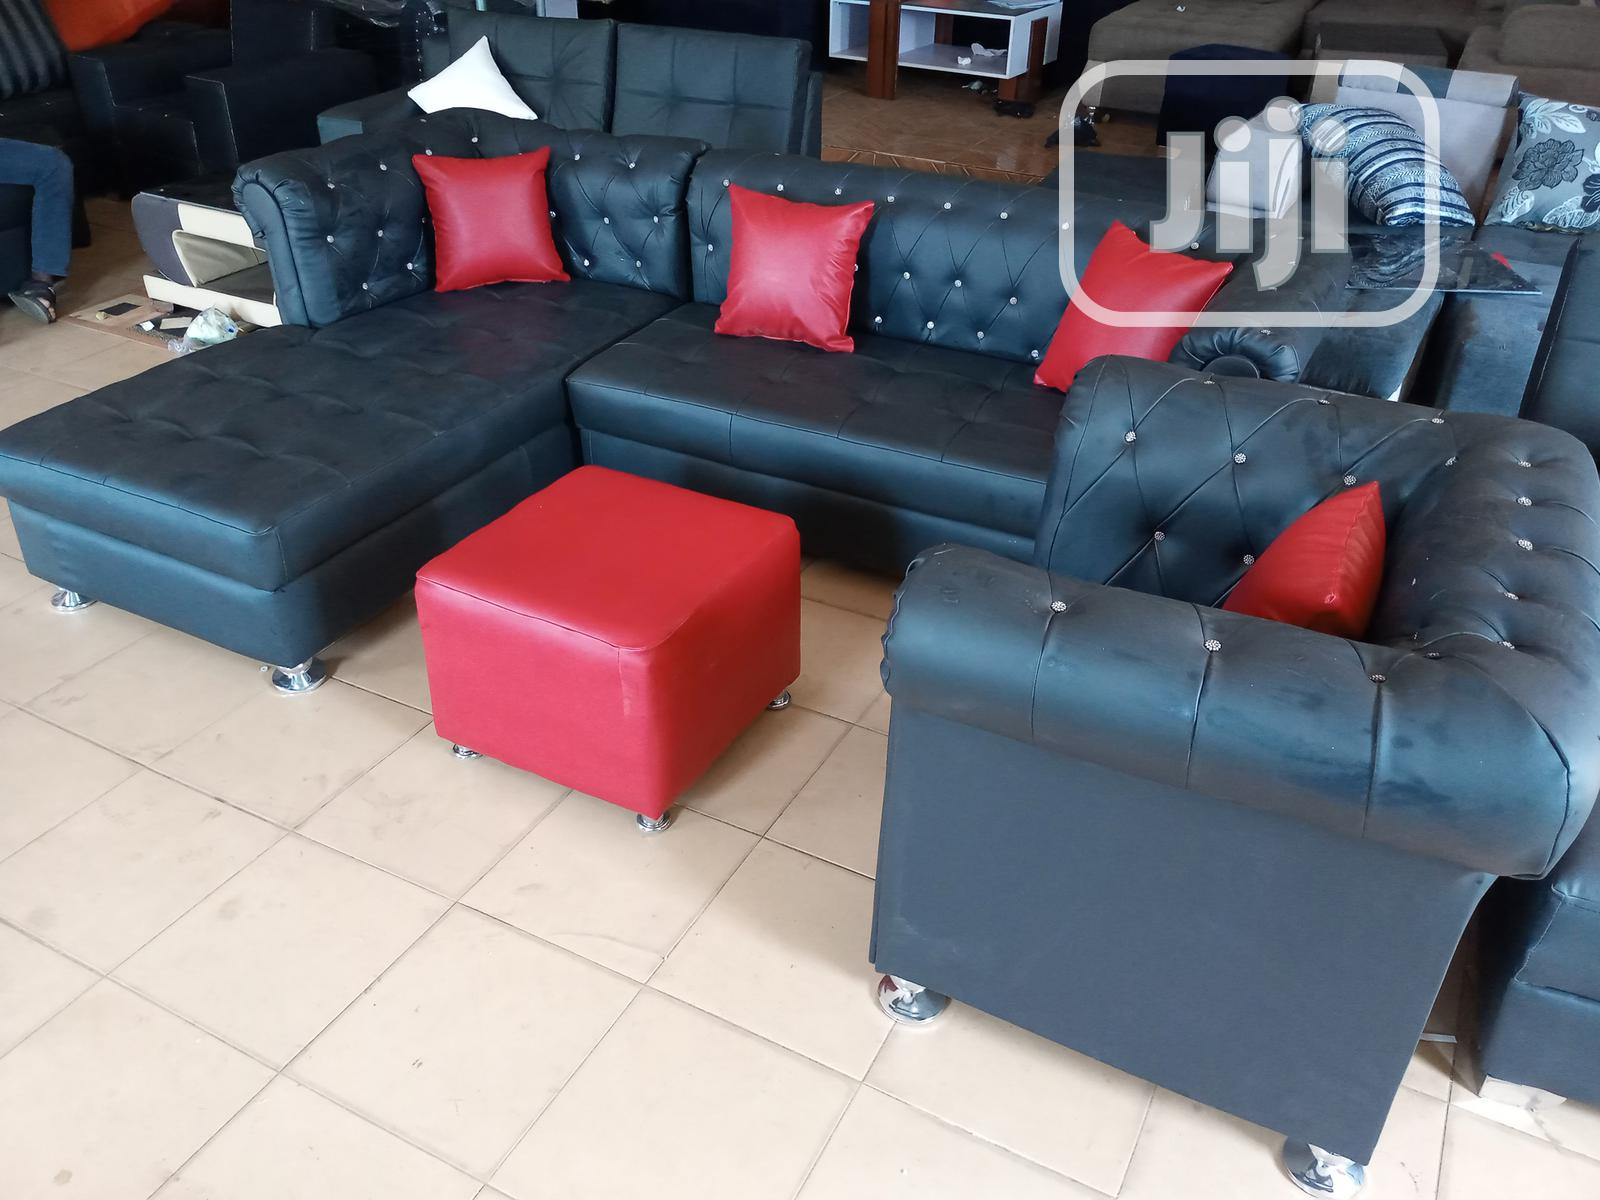 L-Shape Sofa With Single Seater Chair - Leather Couch